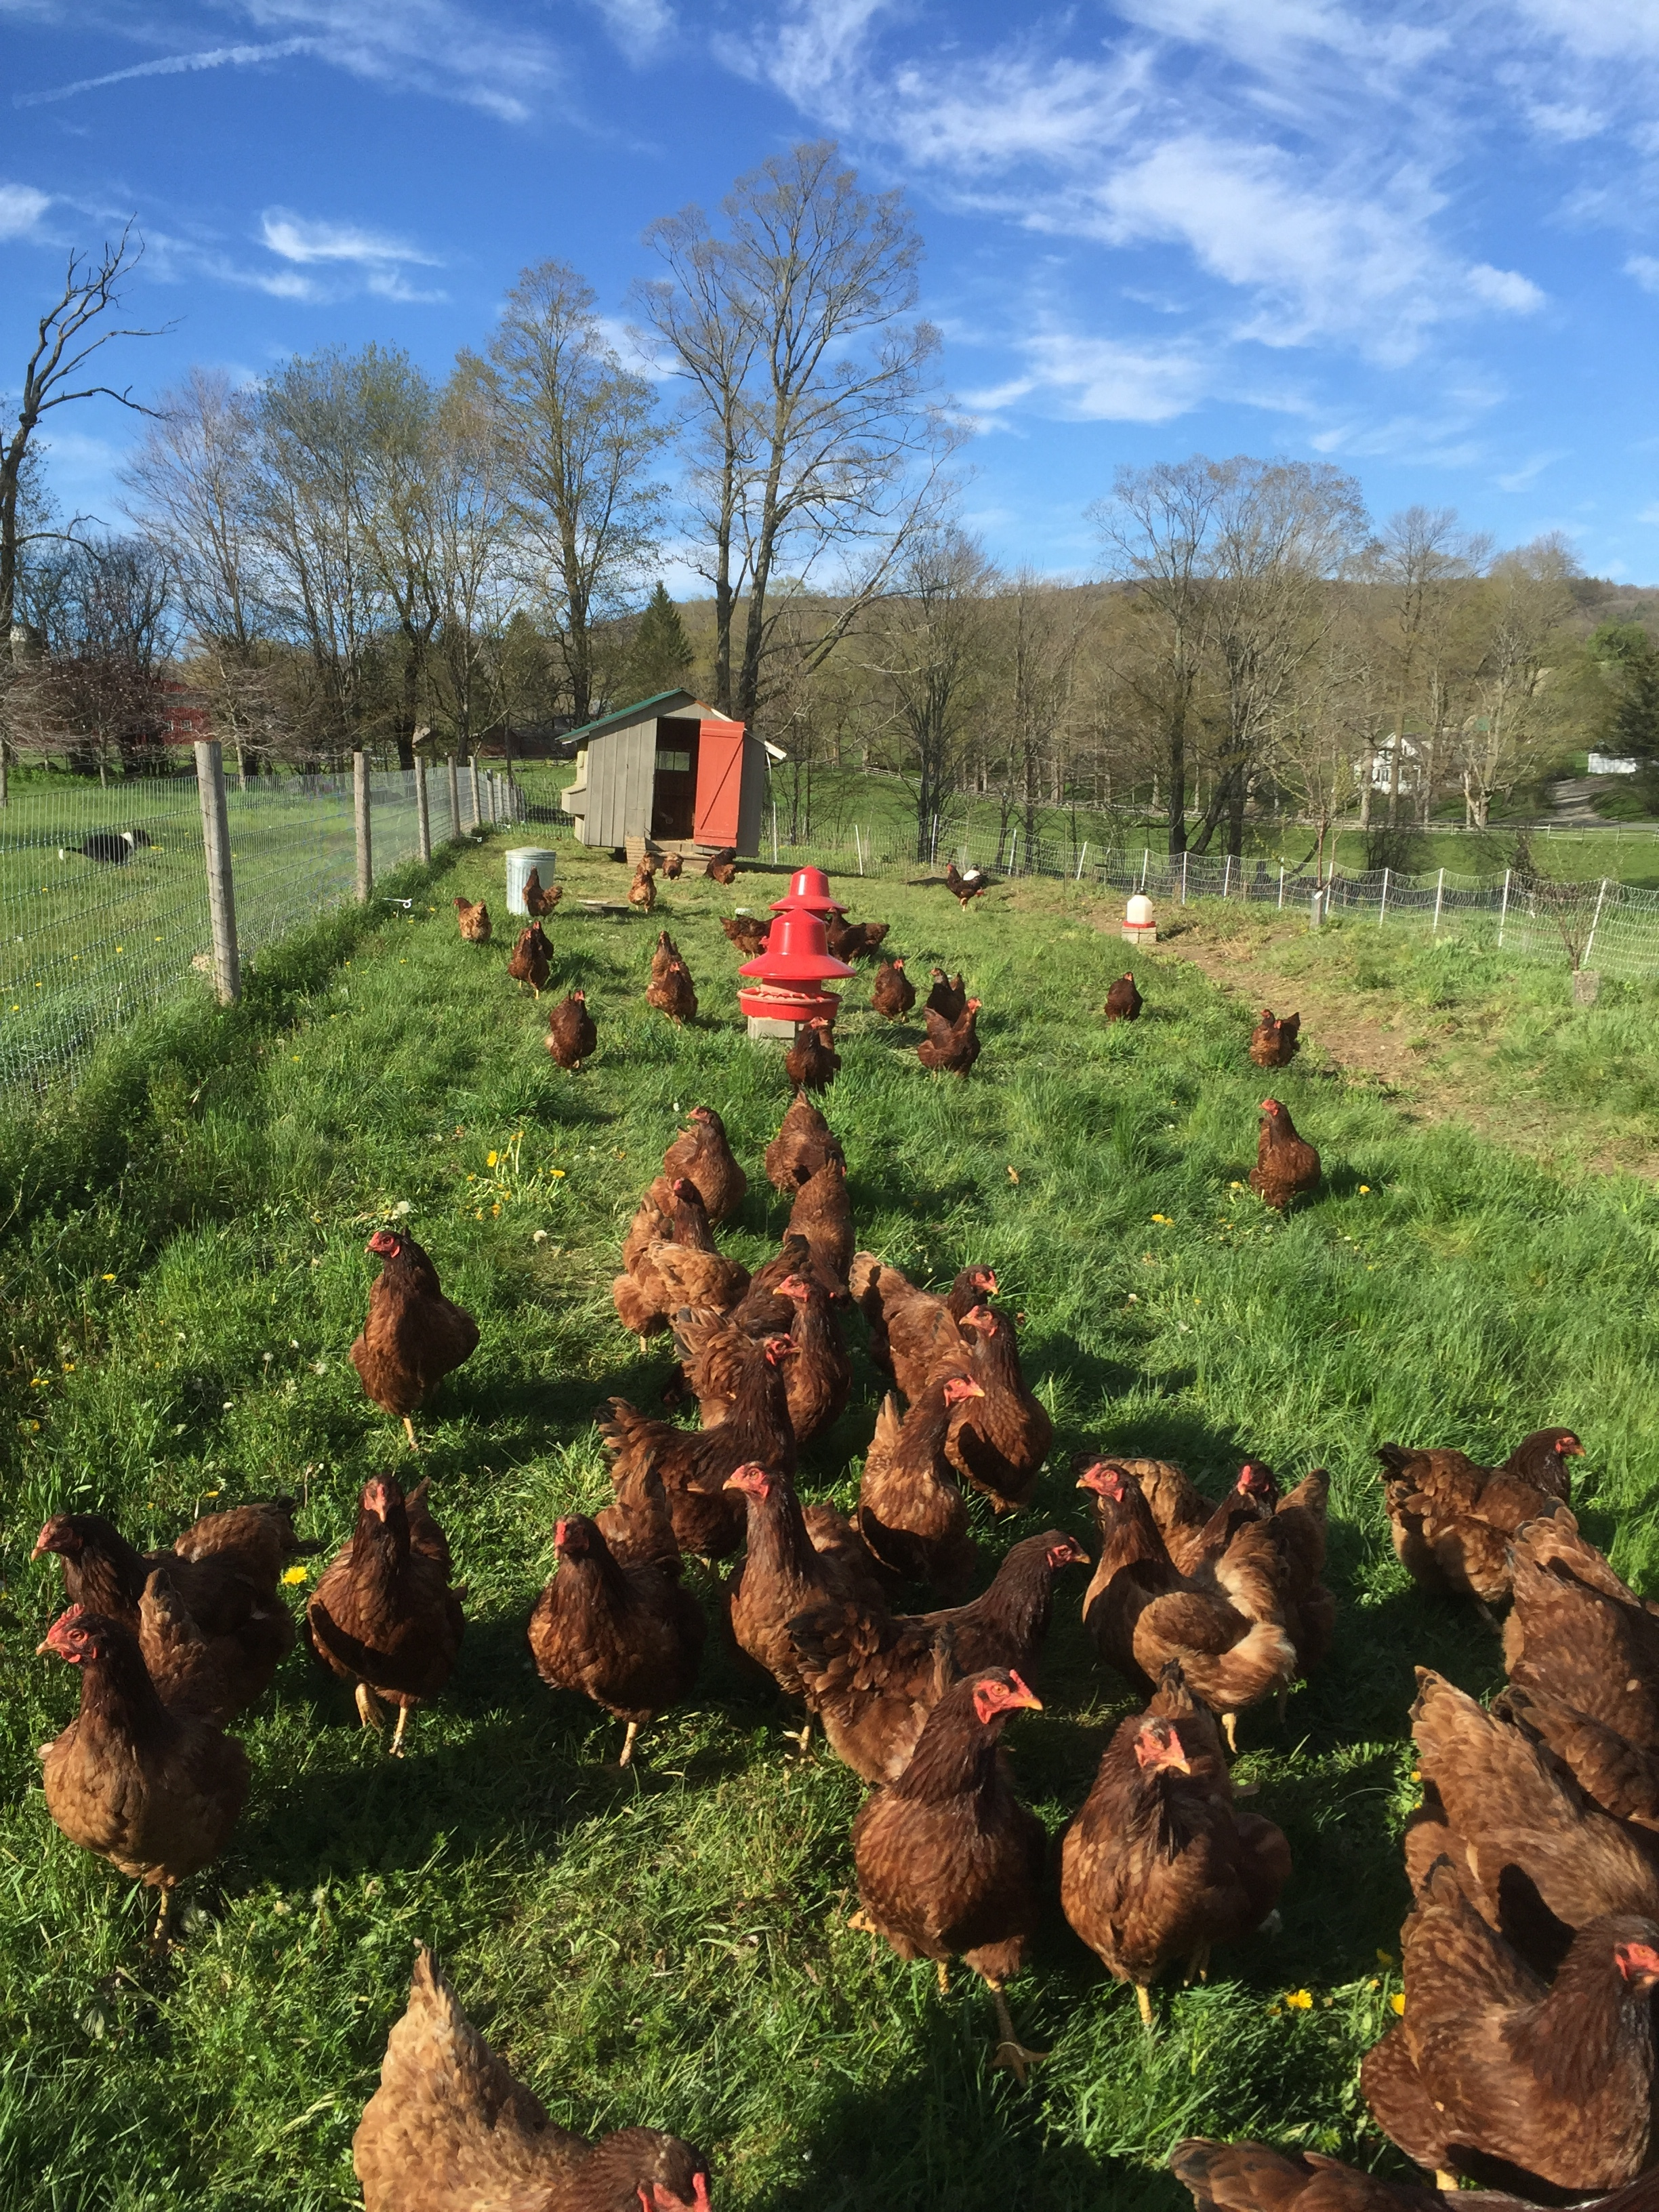 Our heritage Buckeye chickens foraging on pasture.